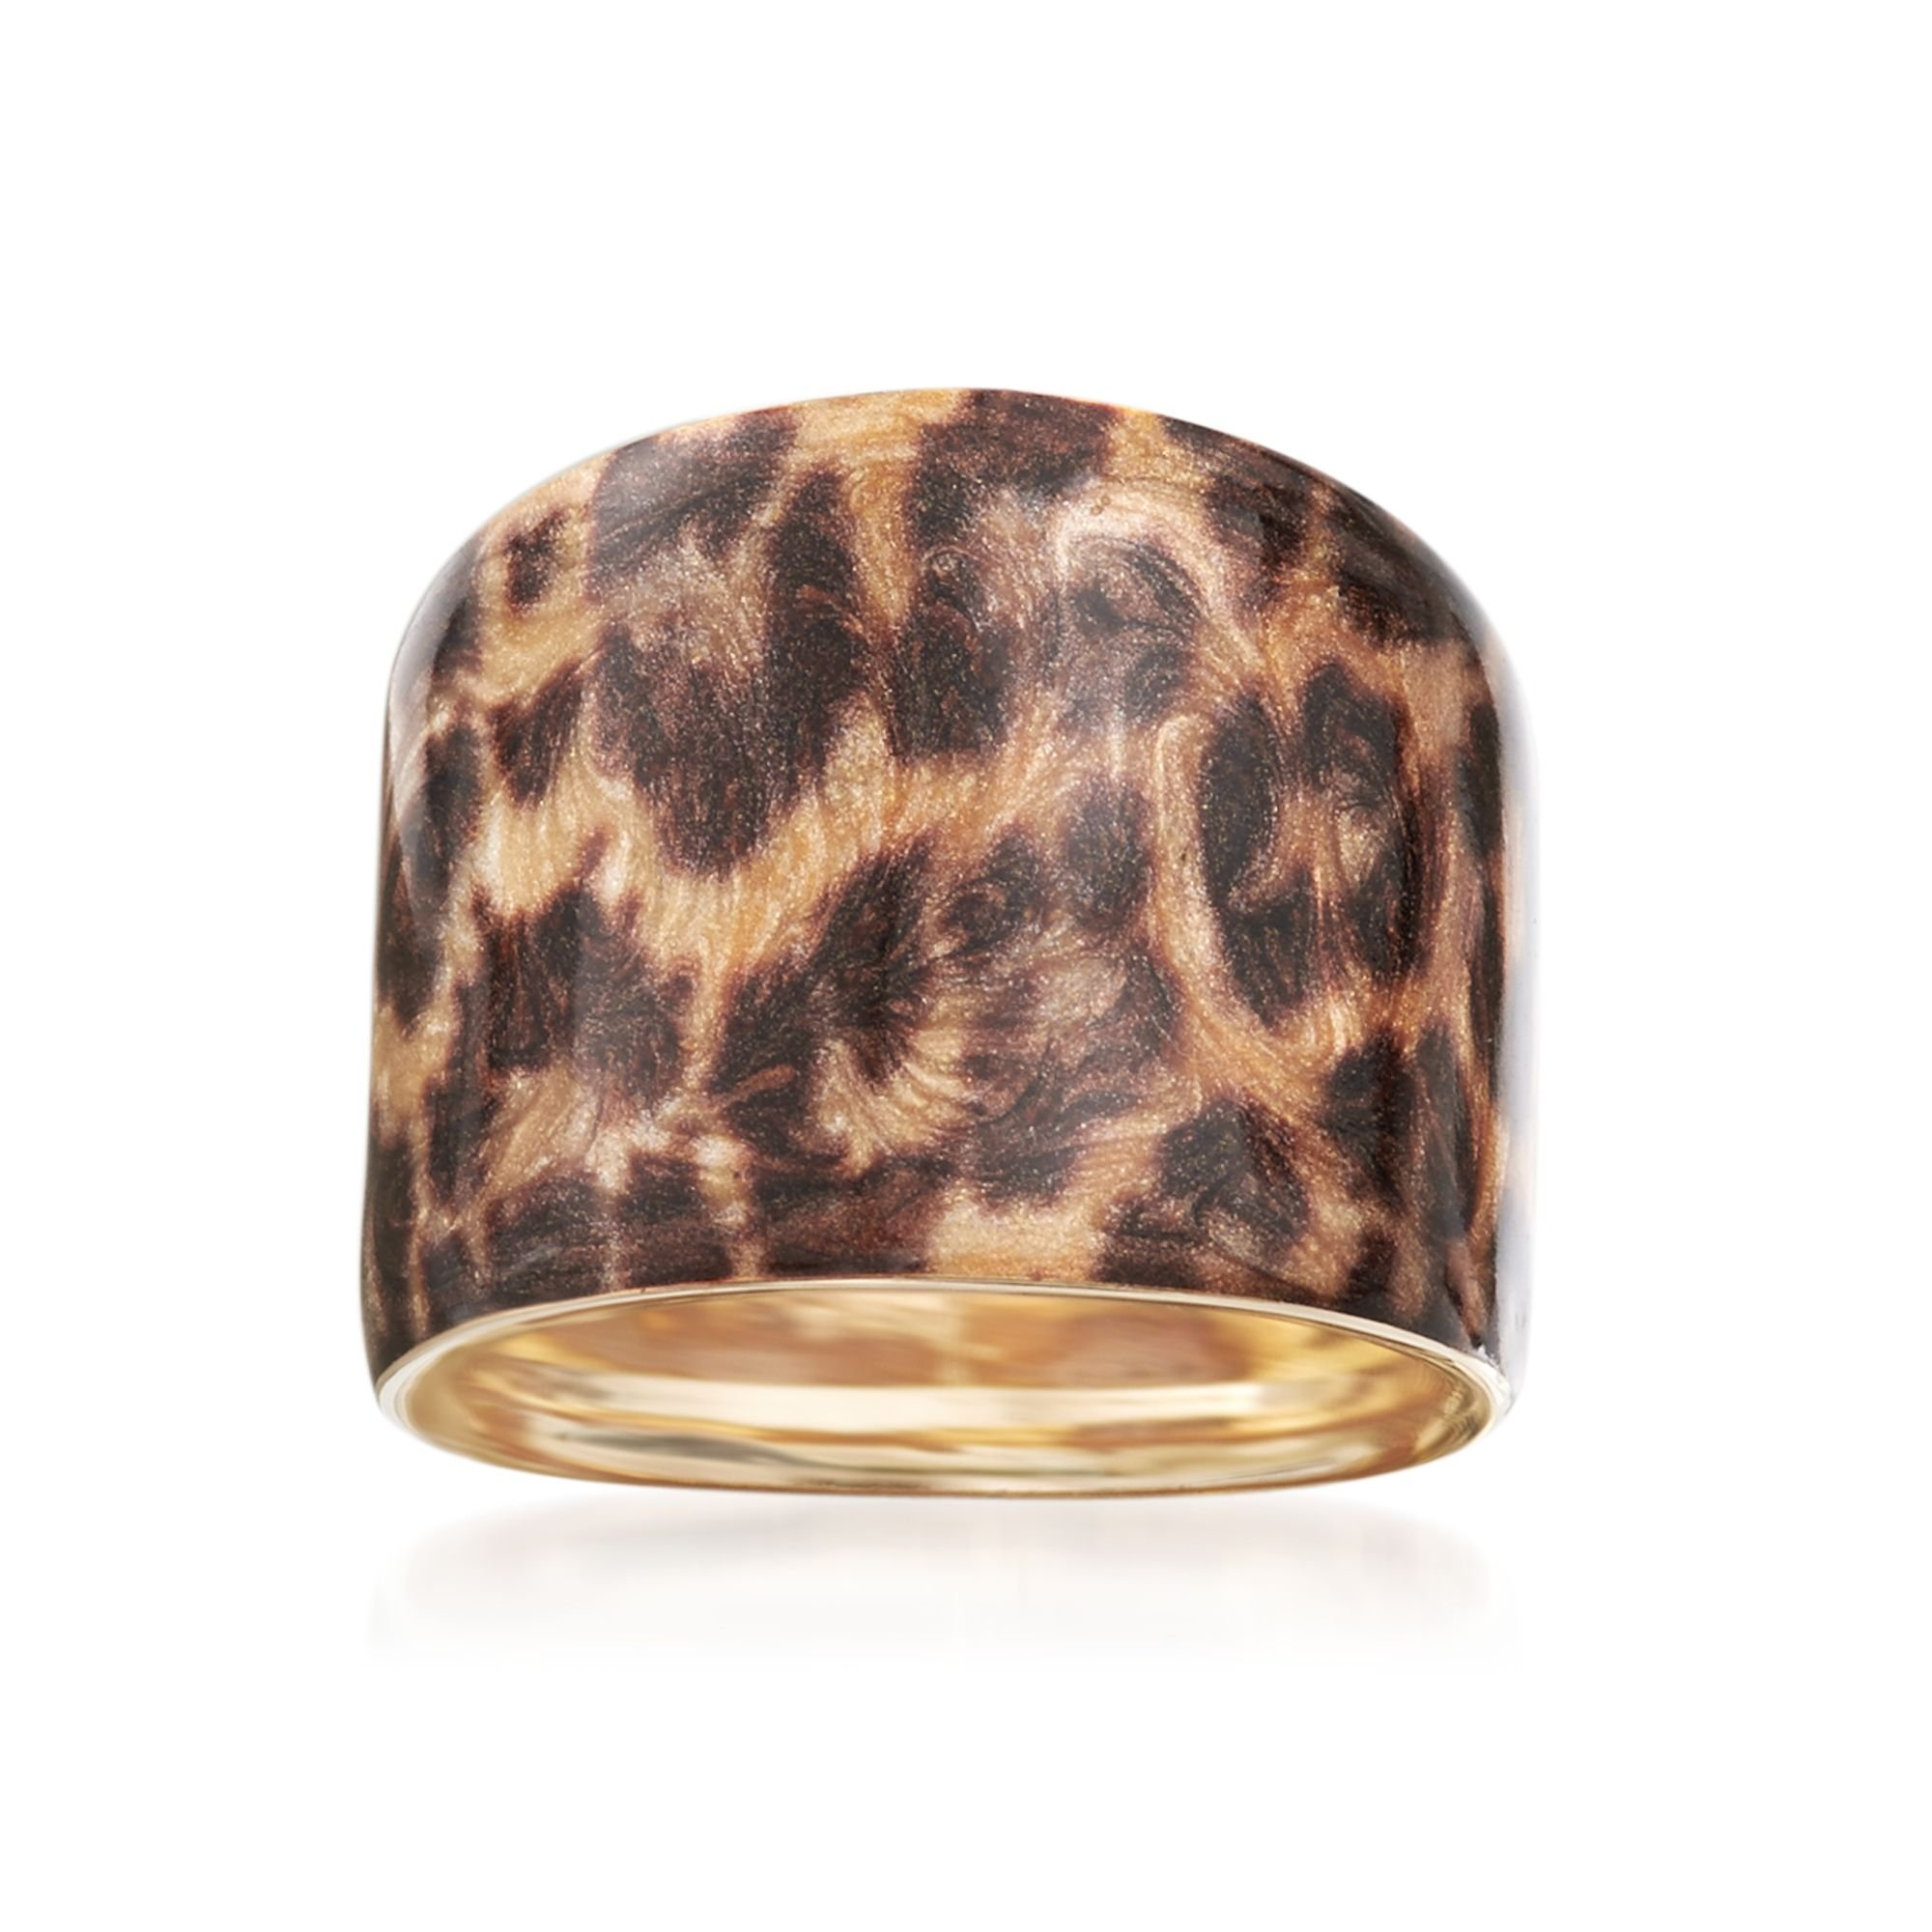 Ross-Simons Italian 14kt Yellow Gold Ring with Leopard Print Enamel